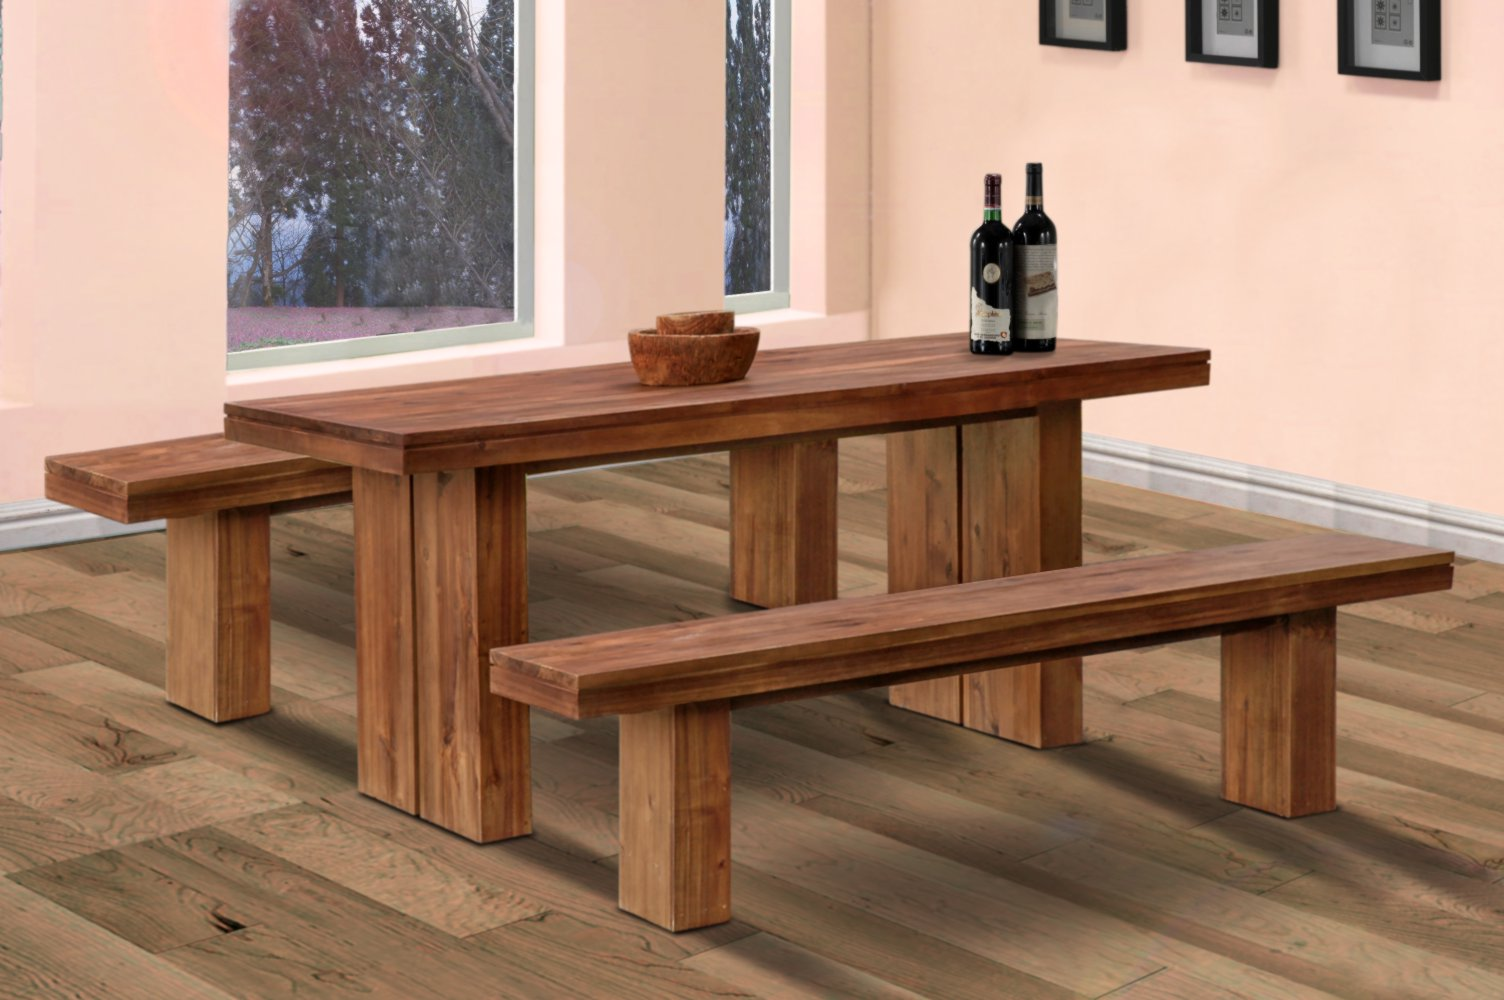 Danielle dining table and bench java valentti for Dining room table and bench set